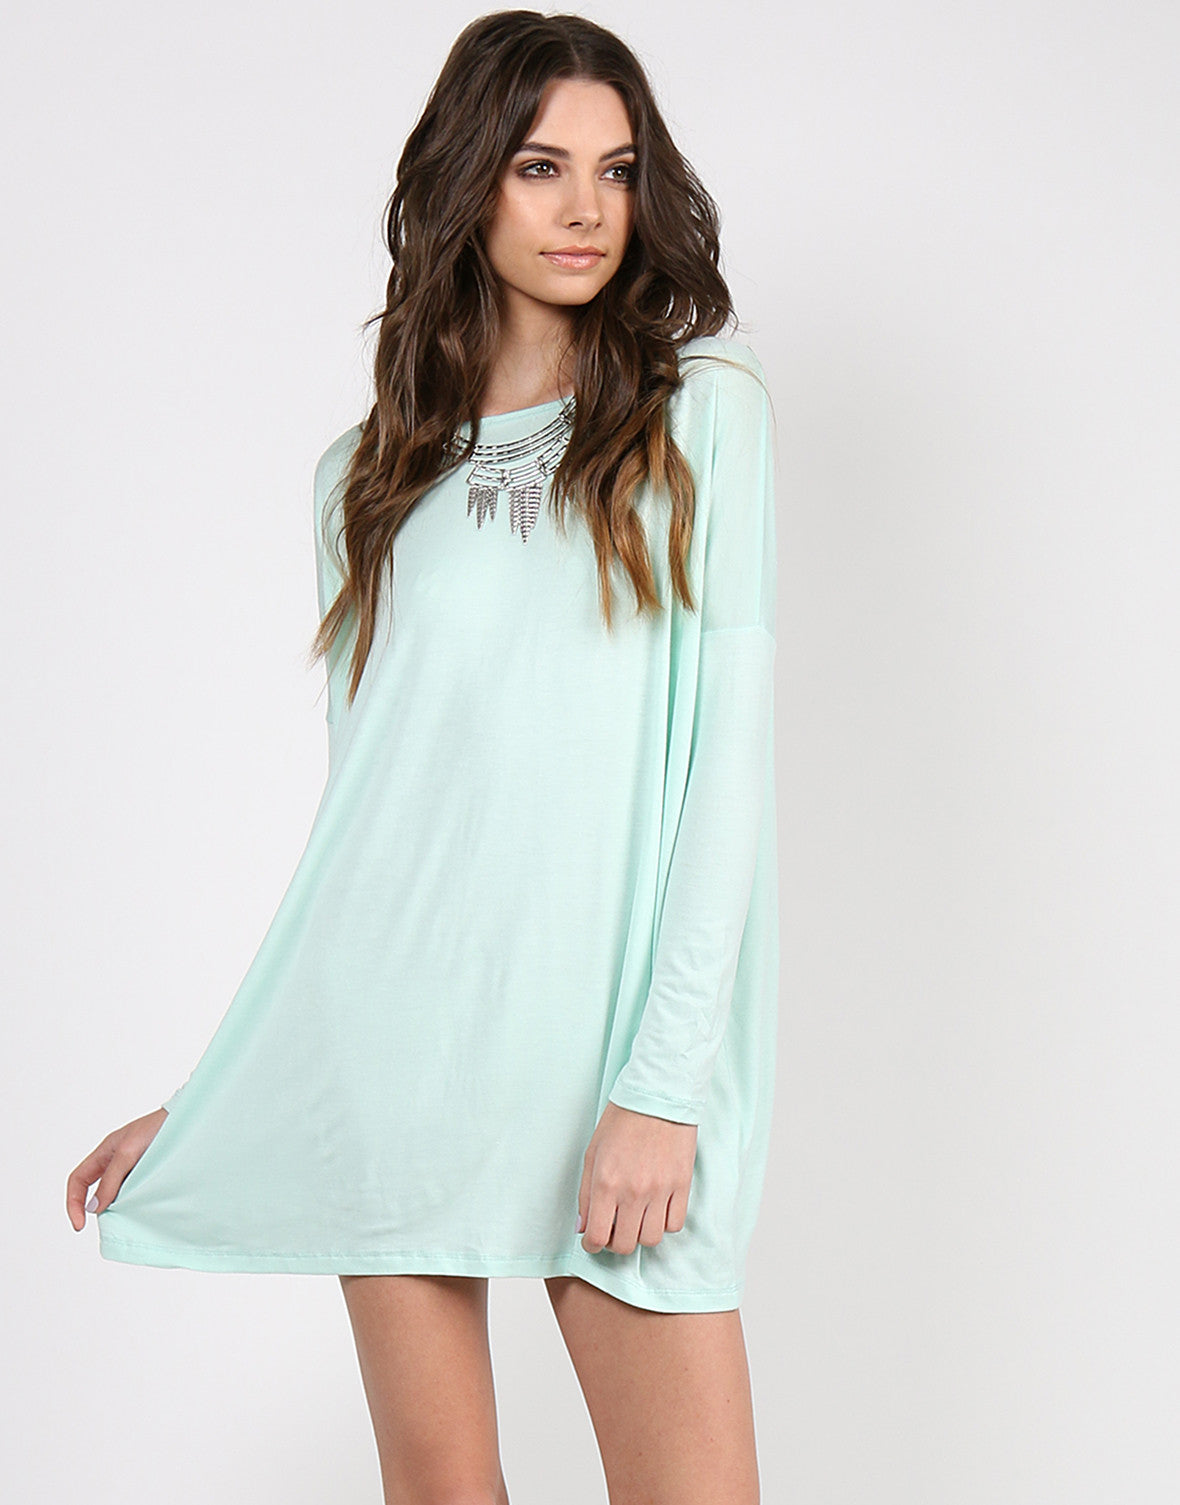 Long Sleeve Shirt Dress - Mint